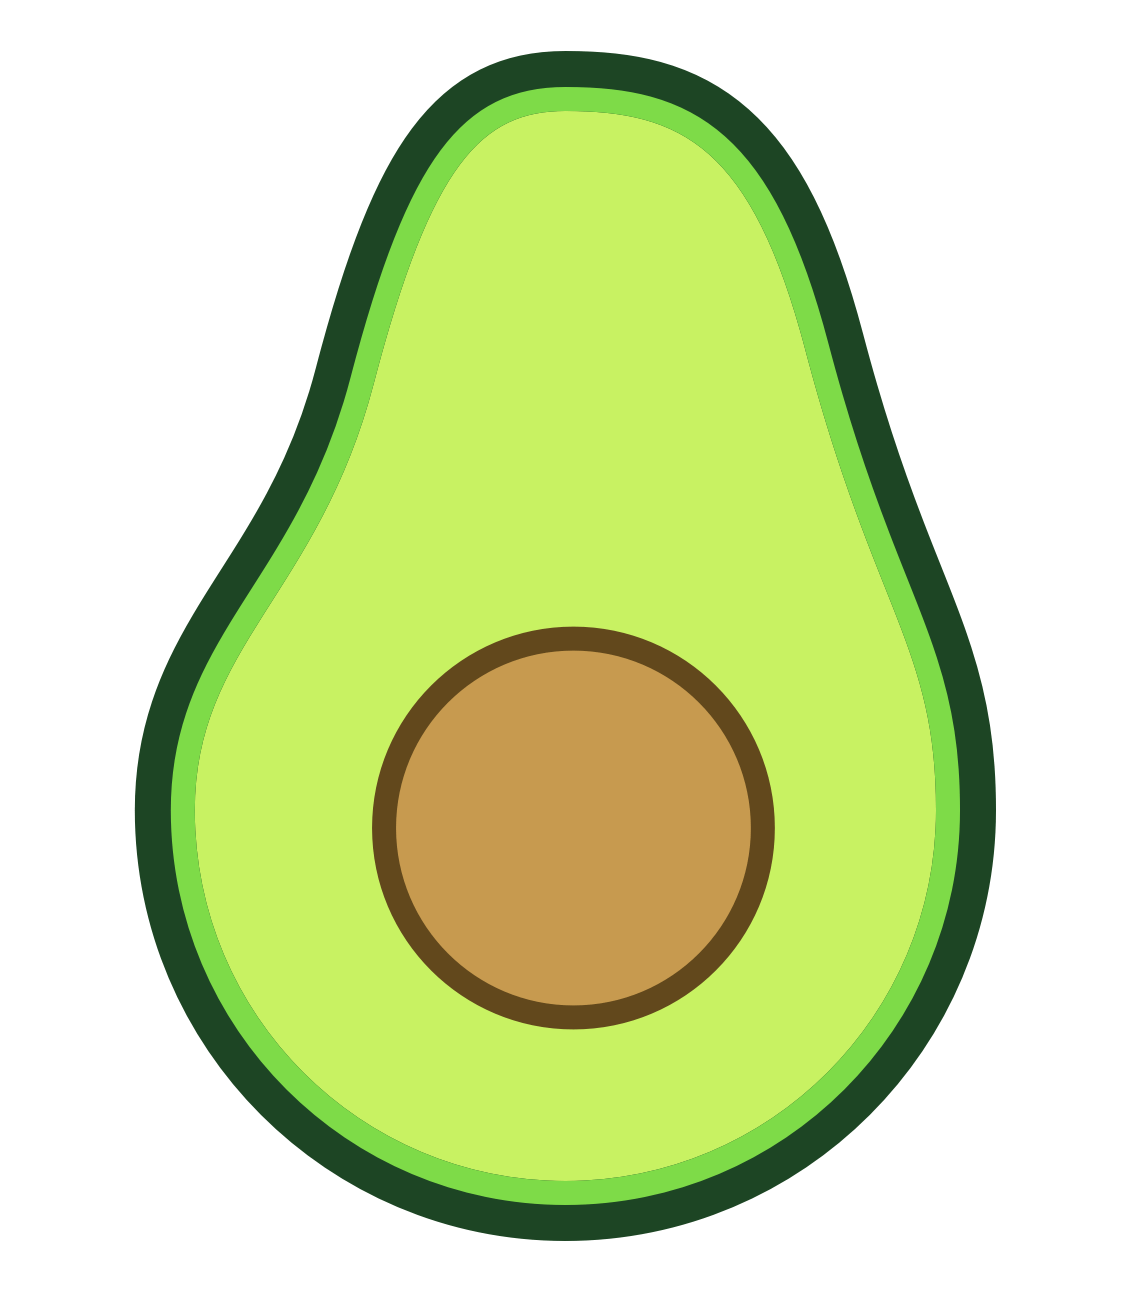 banner Avocado Clipart animated